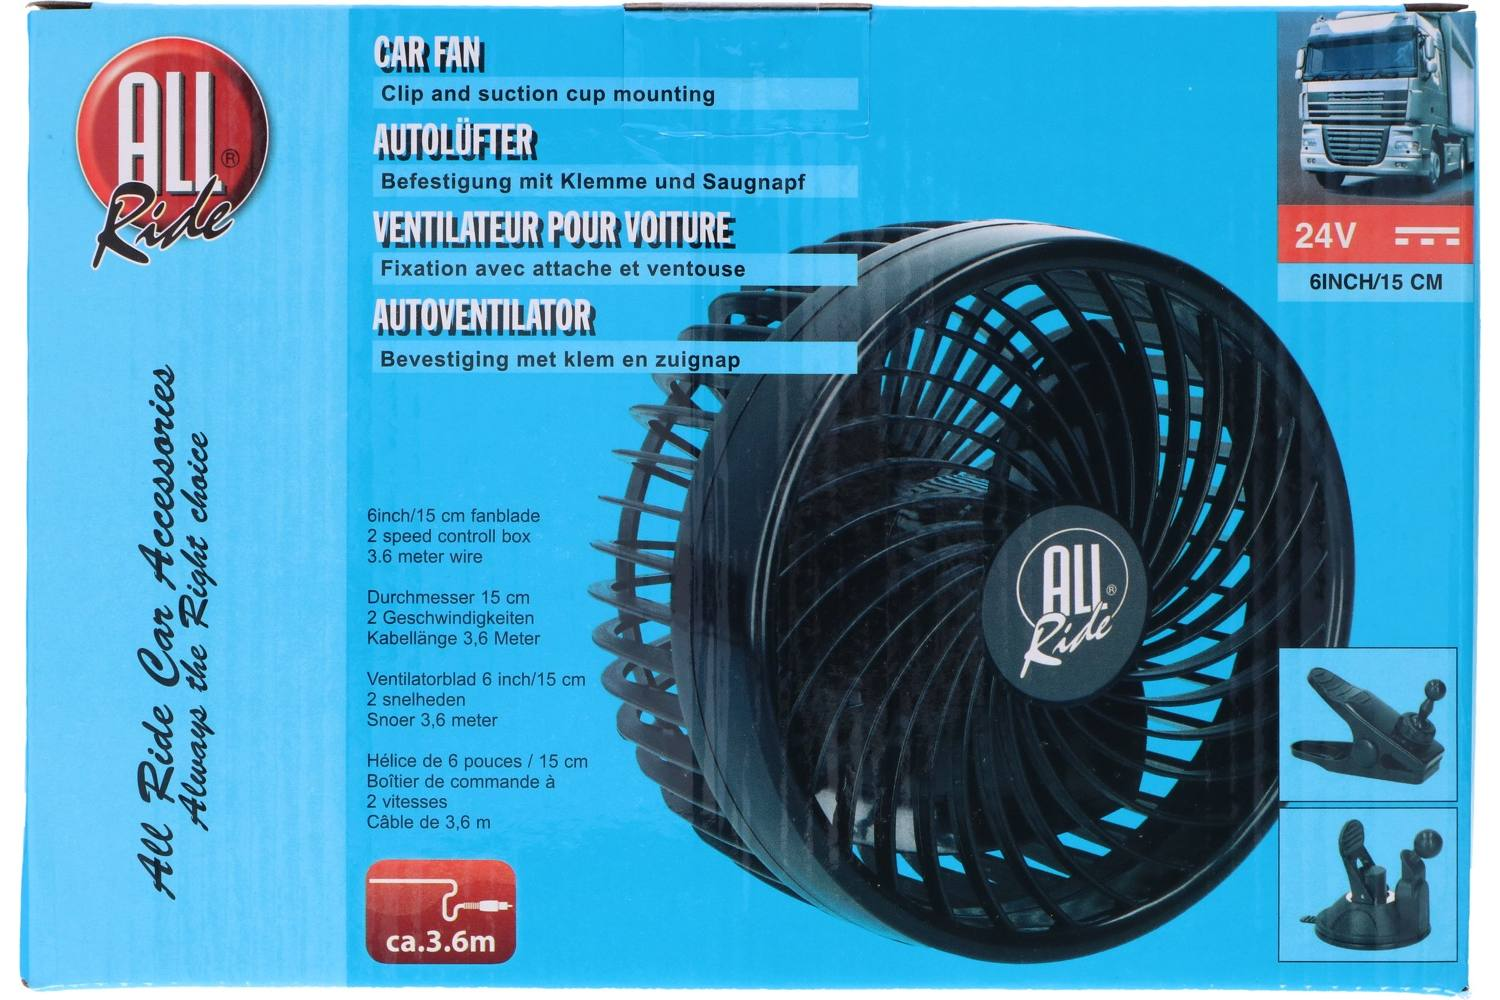 Fan, AllRide, 24V, with suction cup and clip 2